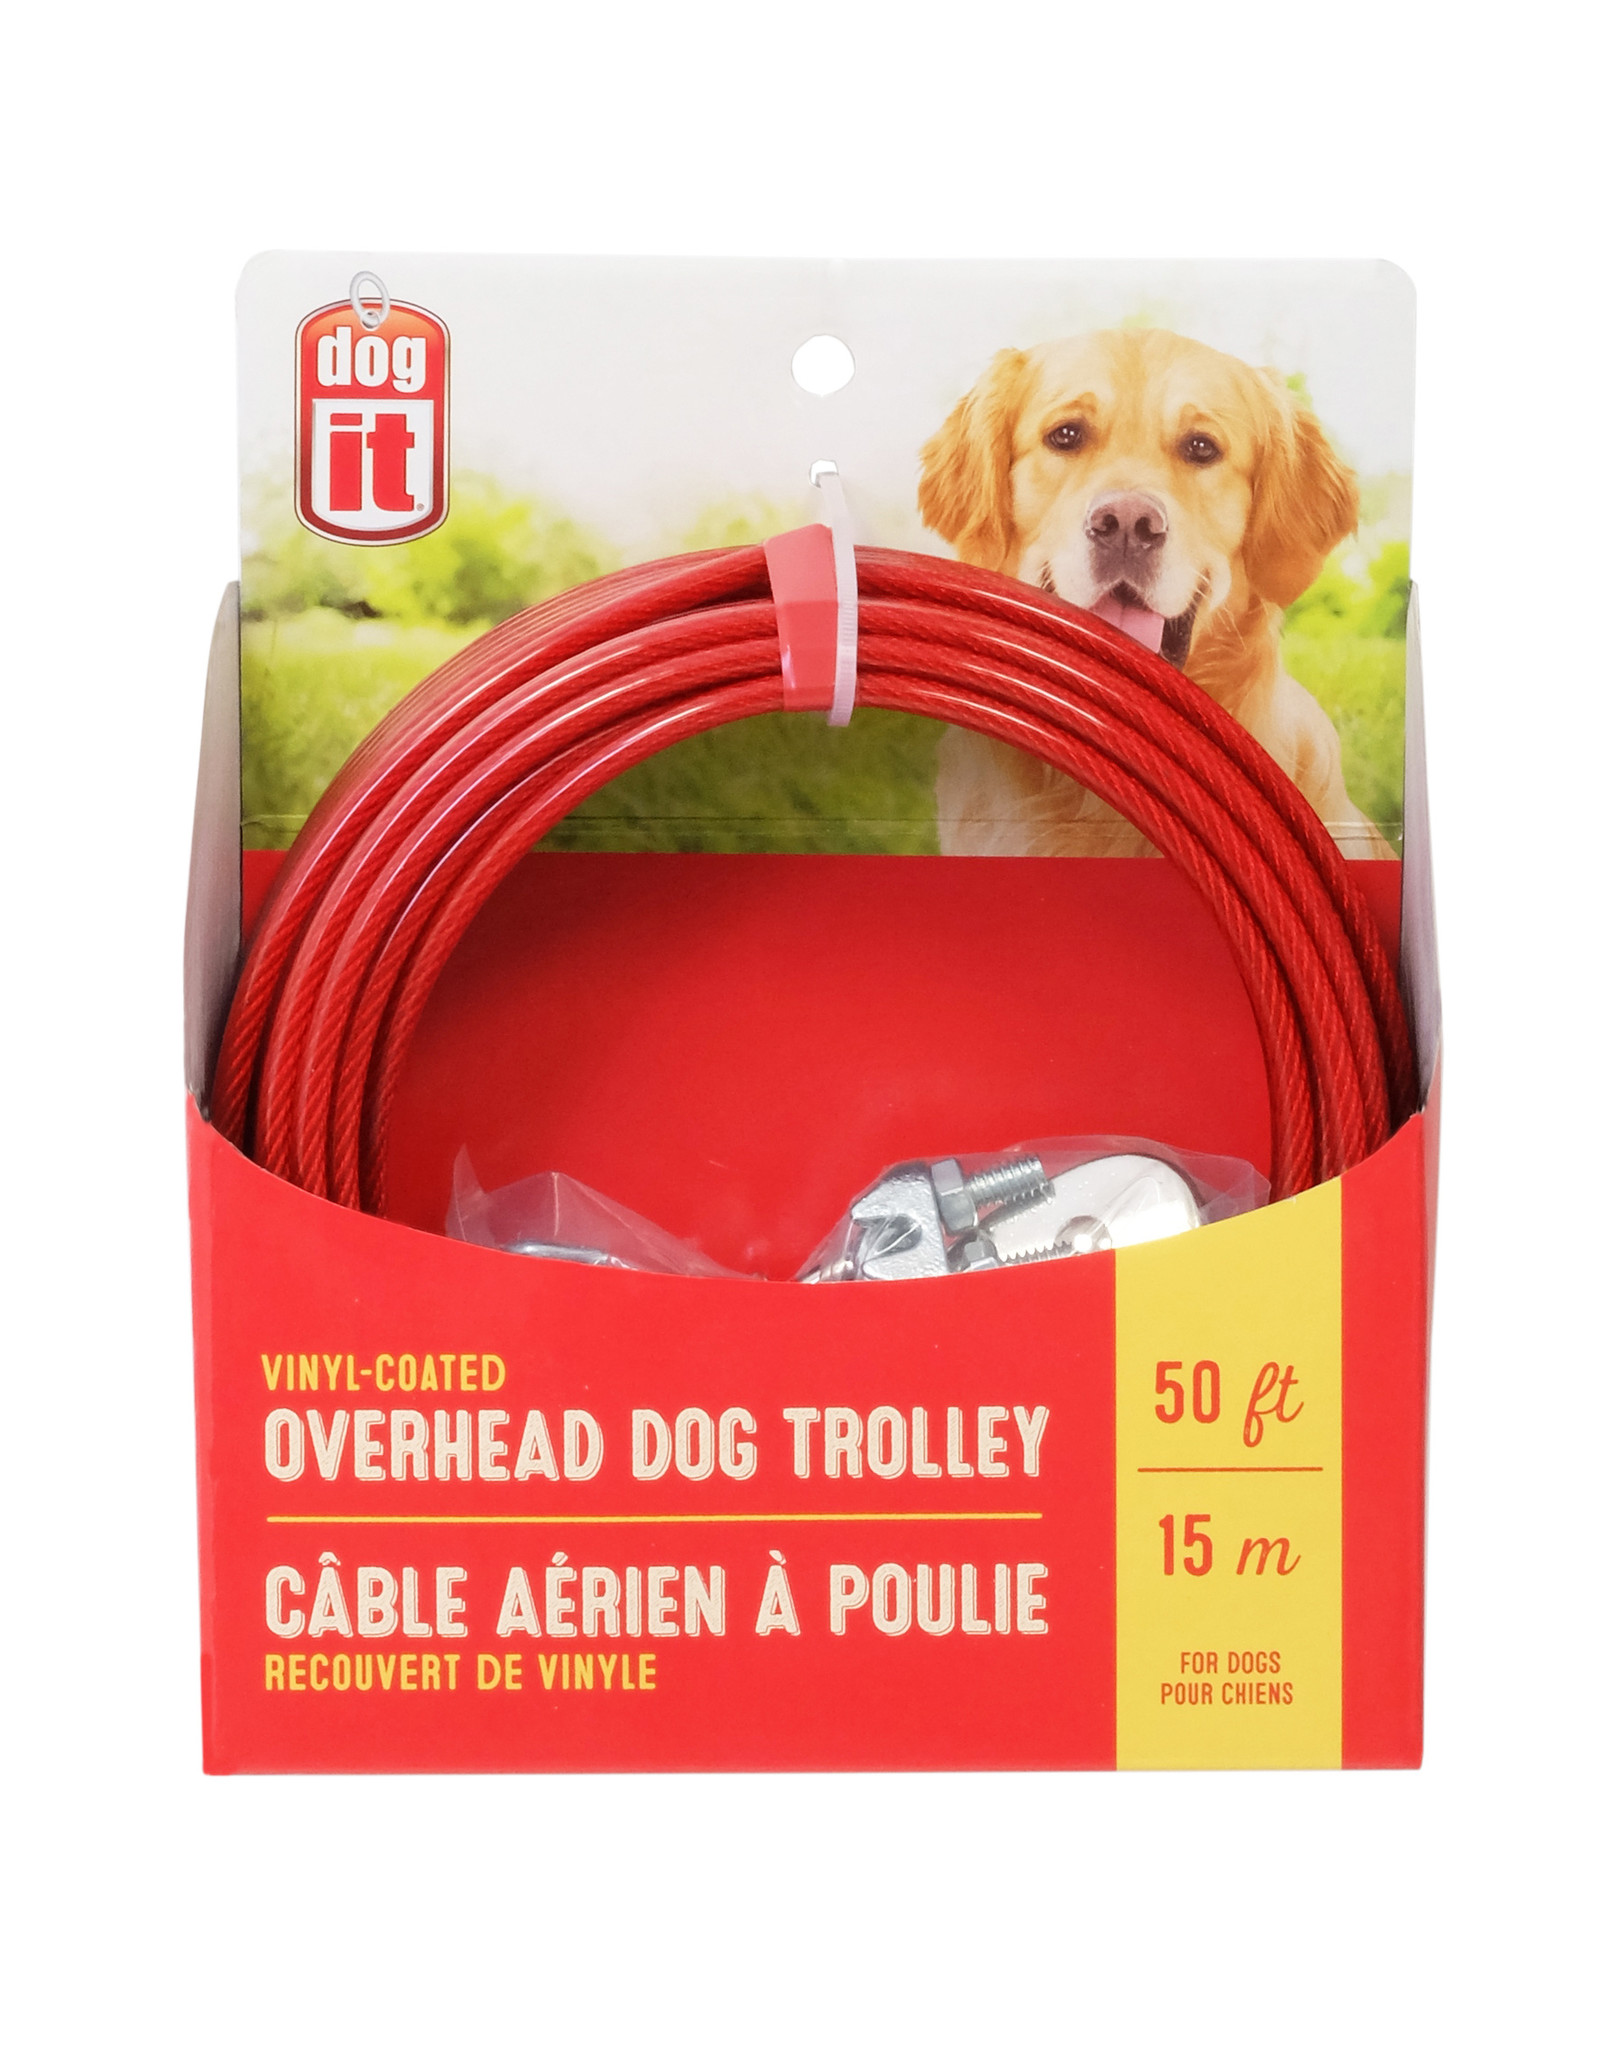 DO - Dogit Dogit Overhead Dog Trolley - Red - 15 m (50 ft) cable